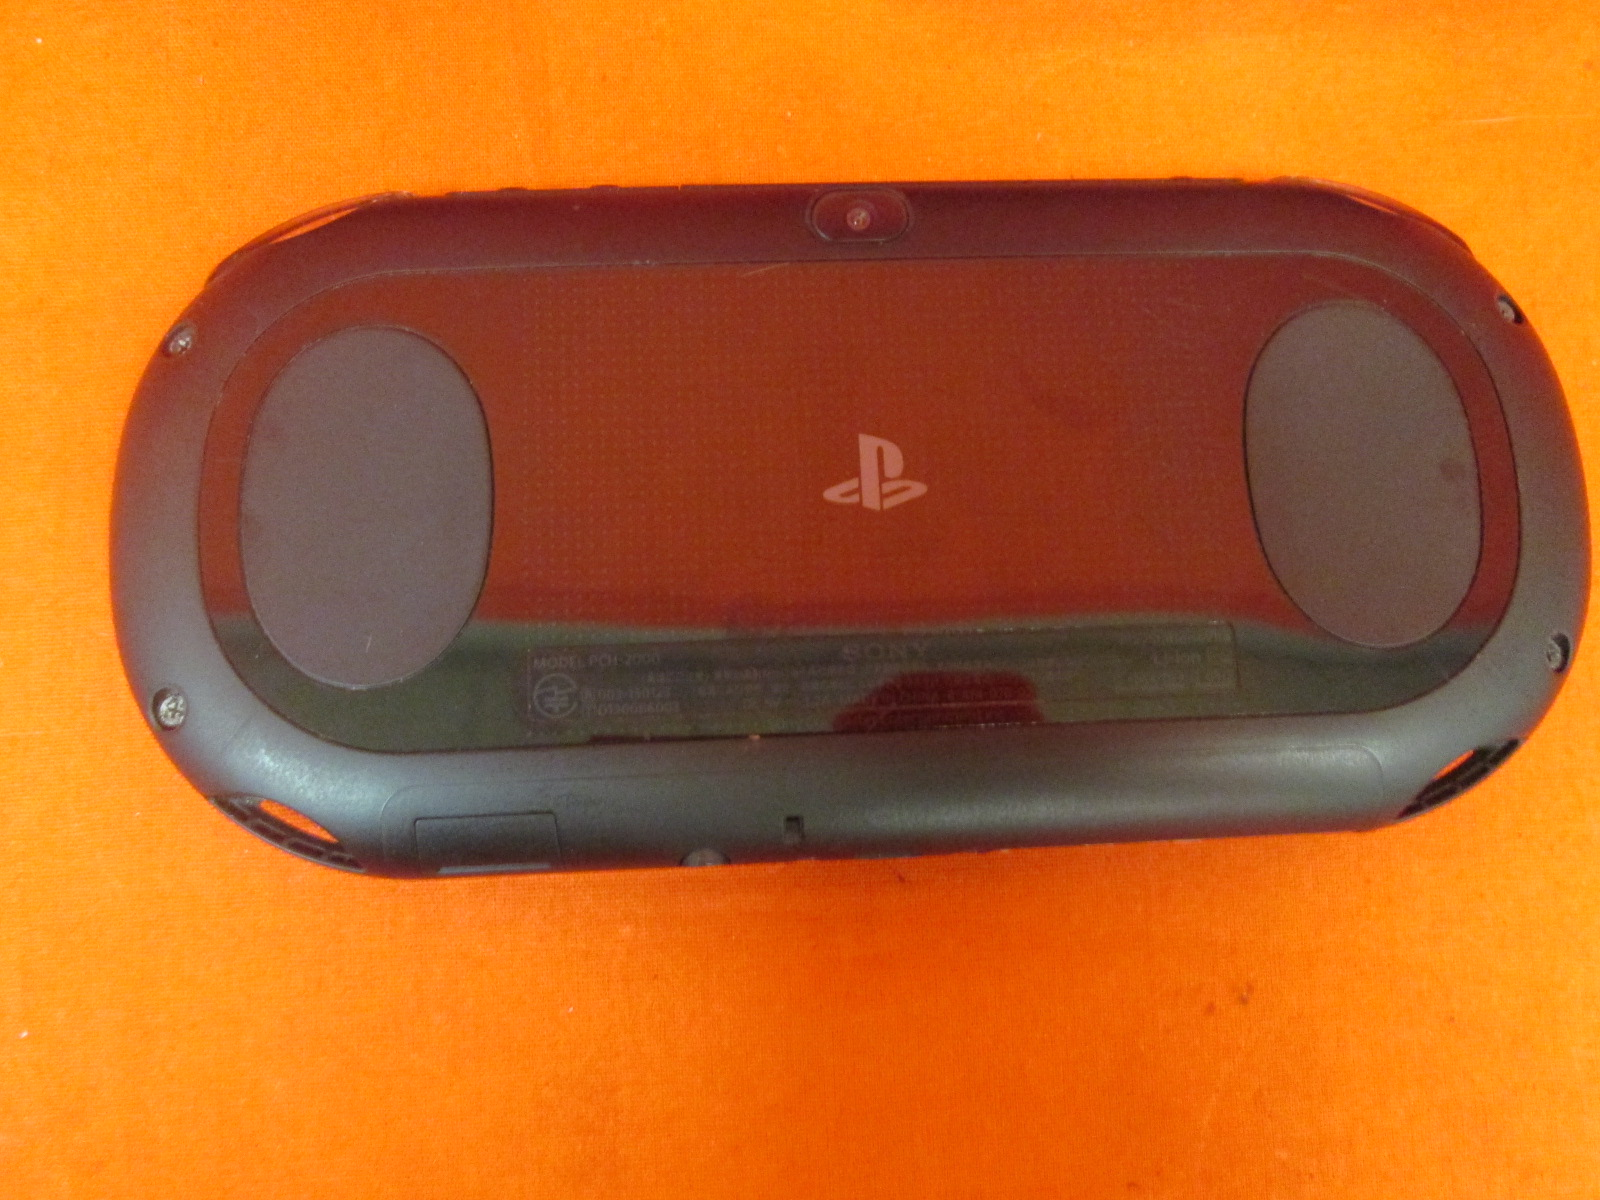 Image 1 of Sony PlayStation Vita Wifi Psvita Handheld Console Ps Vita 2000